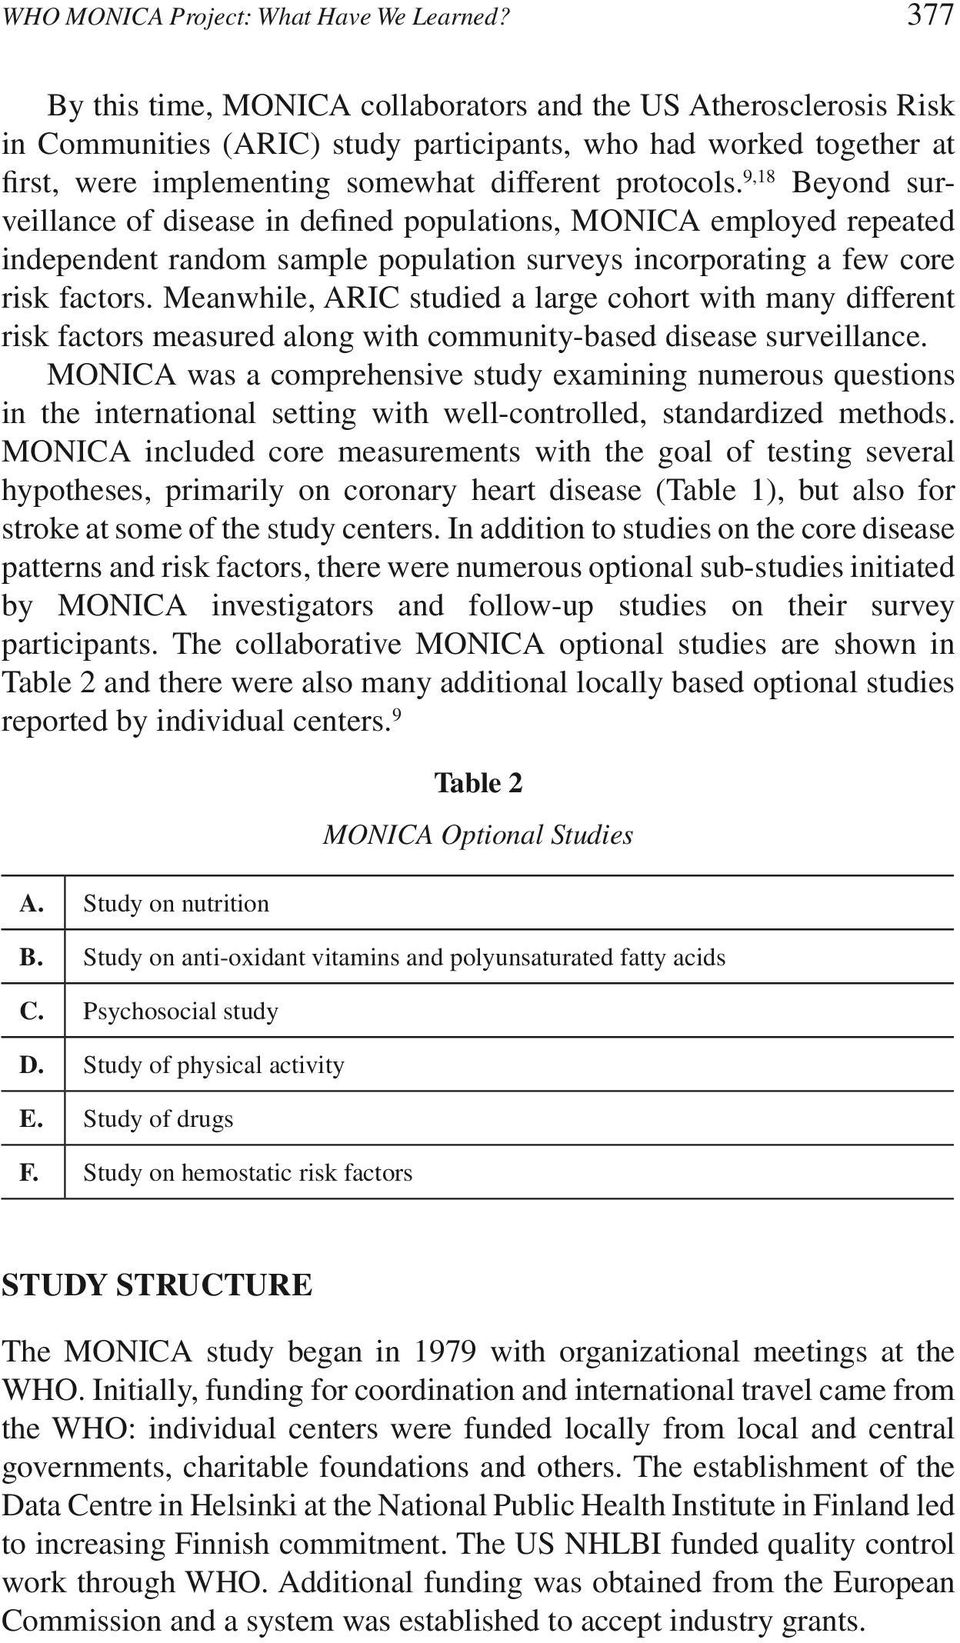 9,18 Beyond surveillance of disease in defined populations, MONICA employed repeated independent random sample population surveys incorporating a few core risk factors.